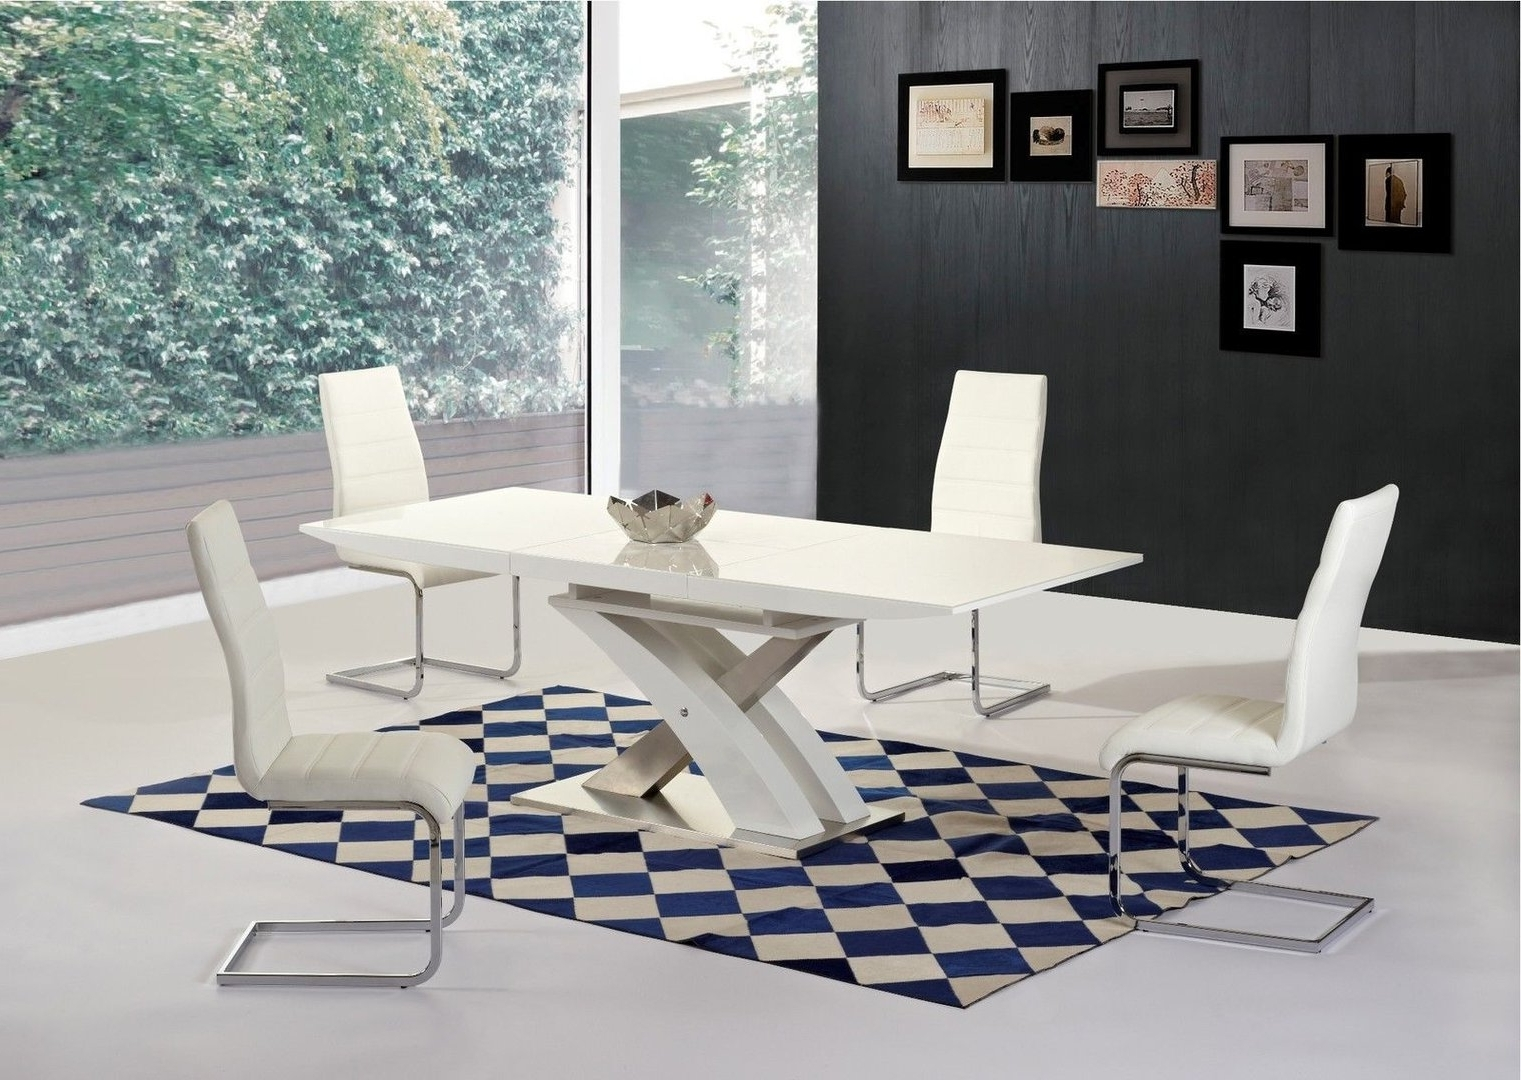 High Gloss Extendable Dining Tables Within Widely Used White High Gloss / Glass Extending Dining Table & 6 Chairs (Gallery 11 of 25)